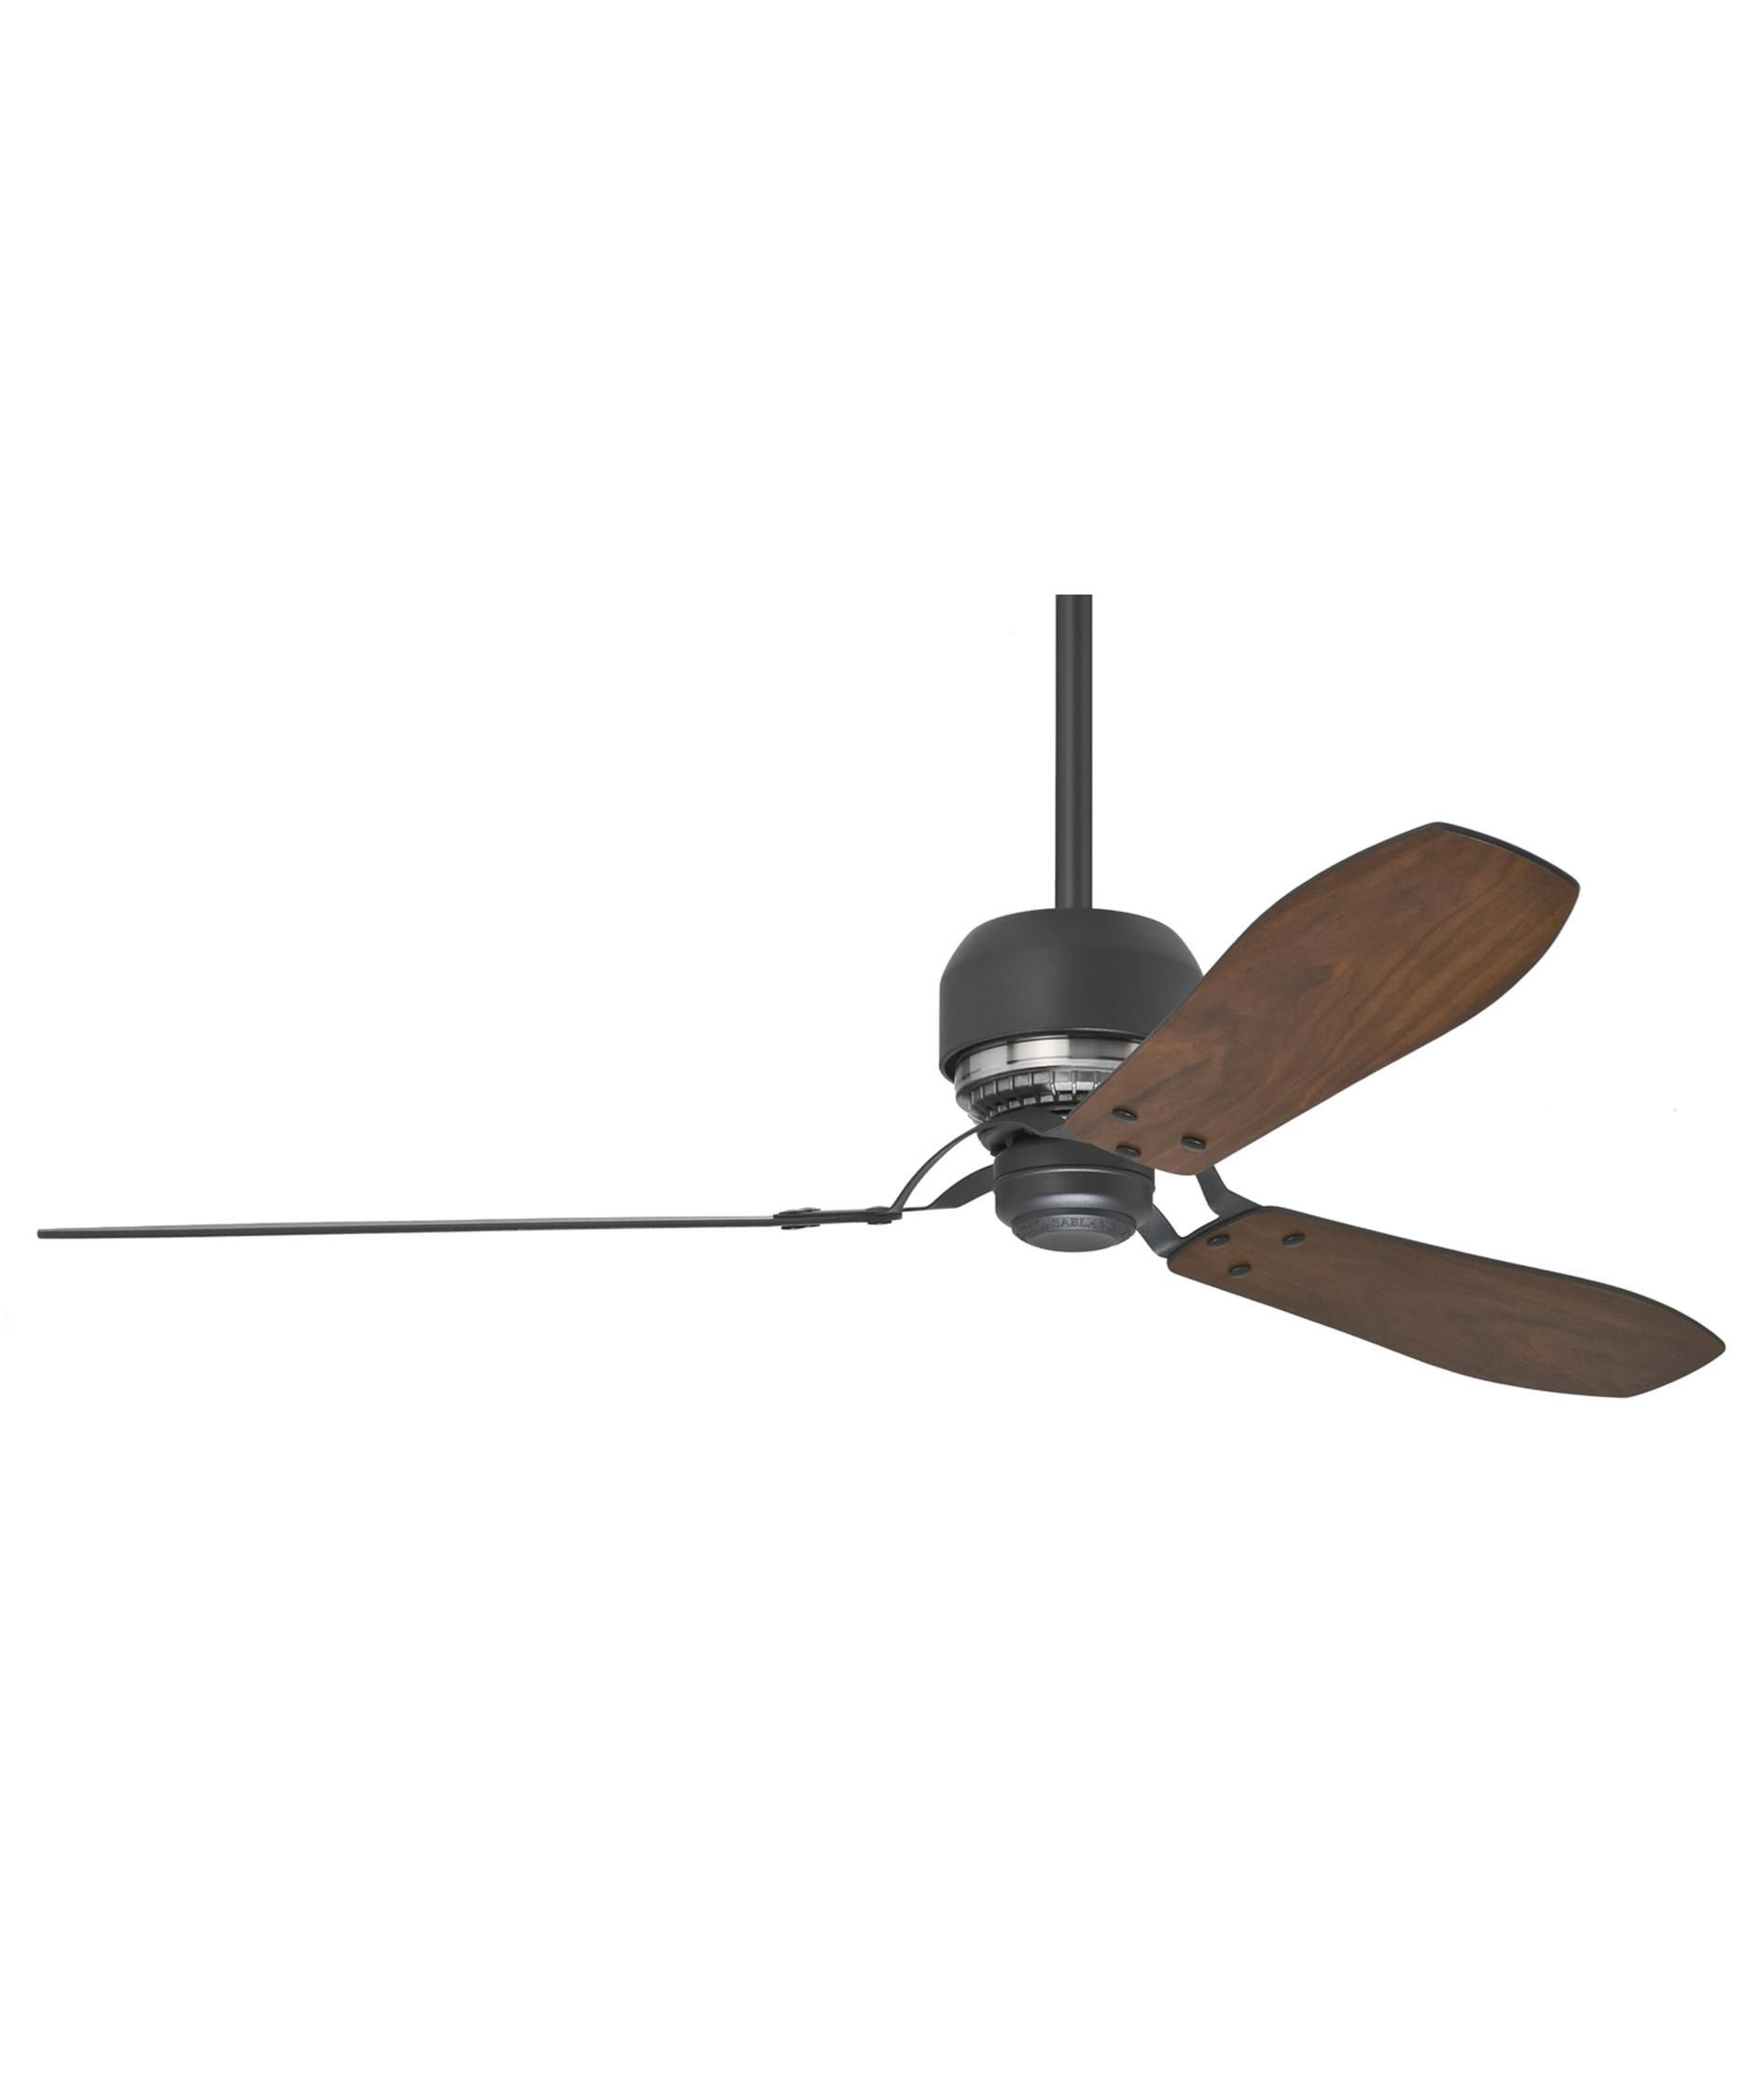 Shown in graphite finish tudor craftsman fans pinterest casablanca fans co tribeca ceiling fan graphite motor with walnutgraphite blades 3 blade industrial inspired styling with full function wall control aloadofball Choice Image